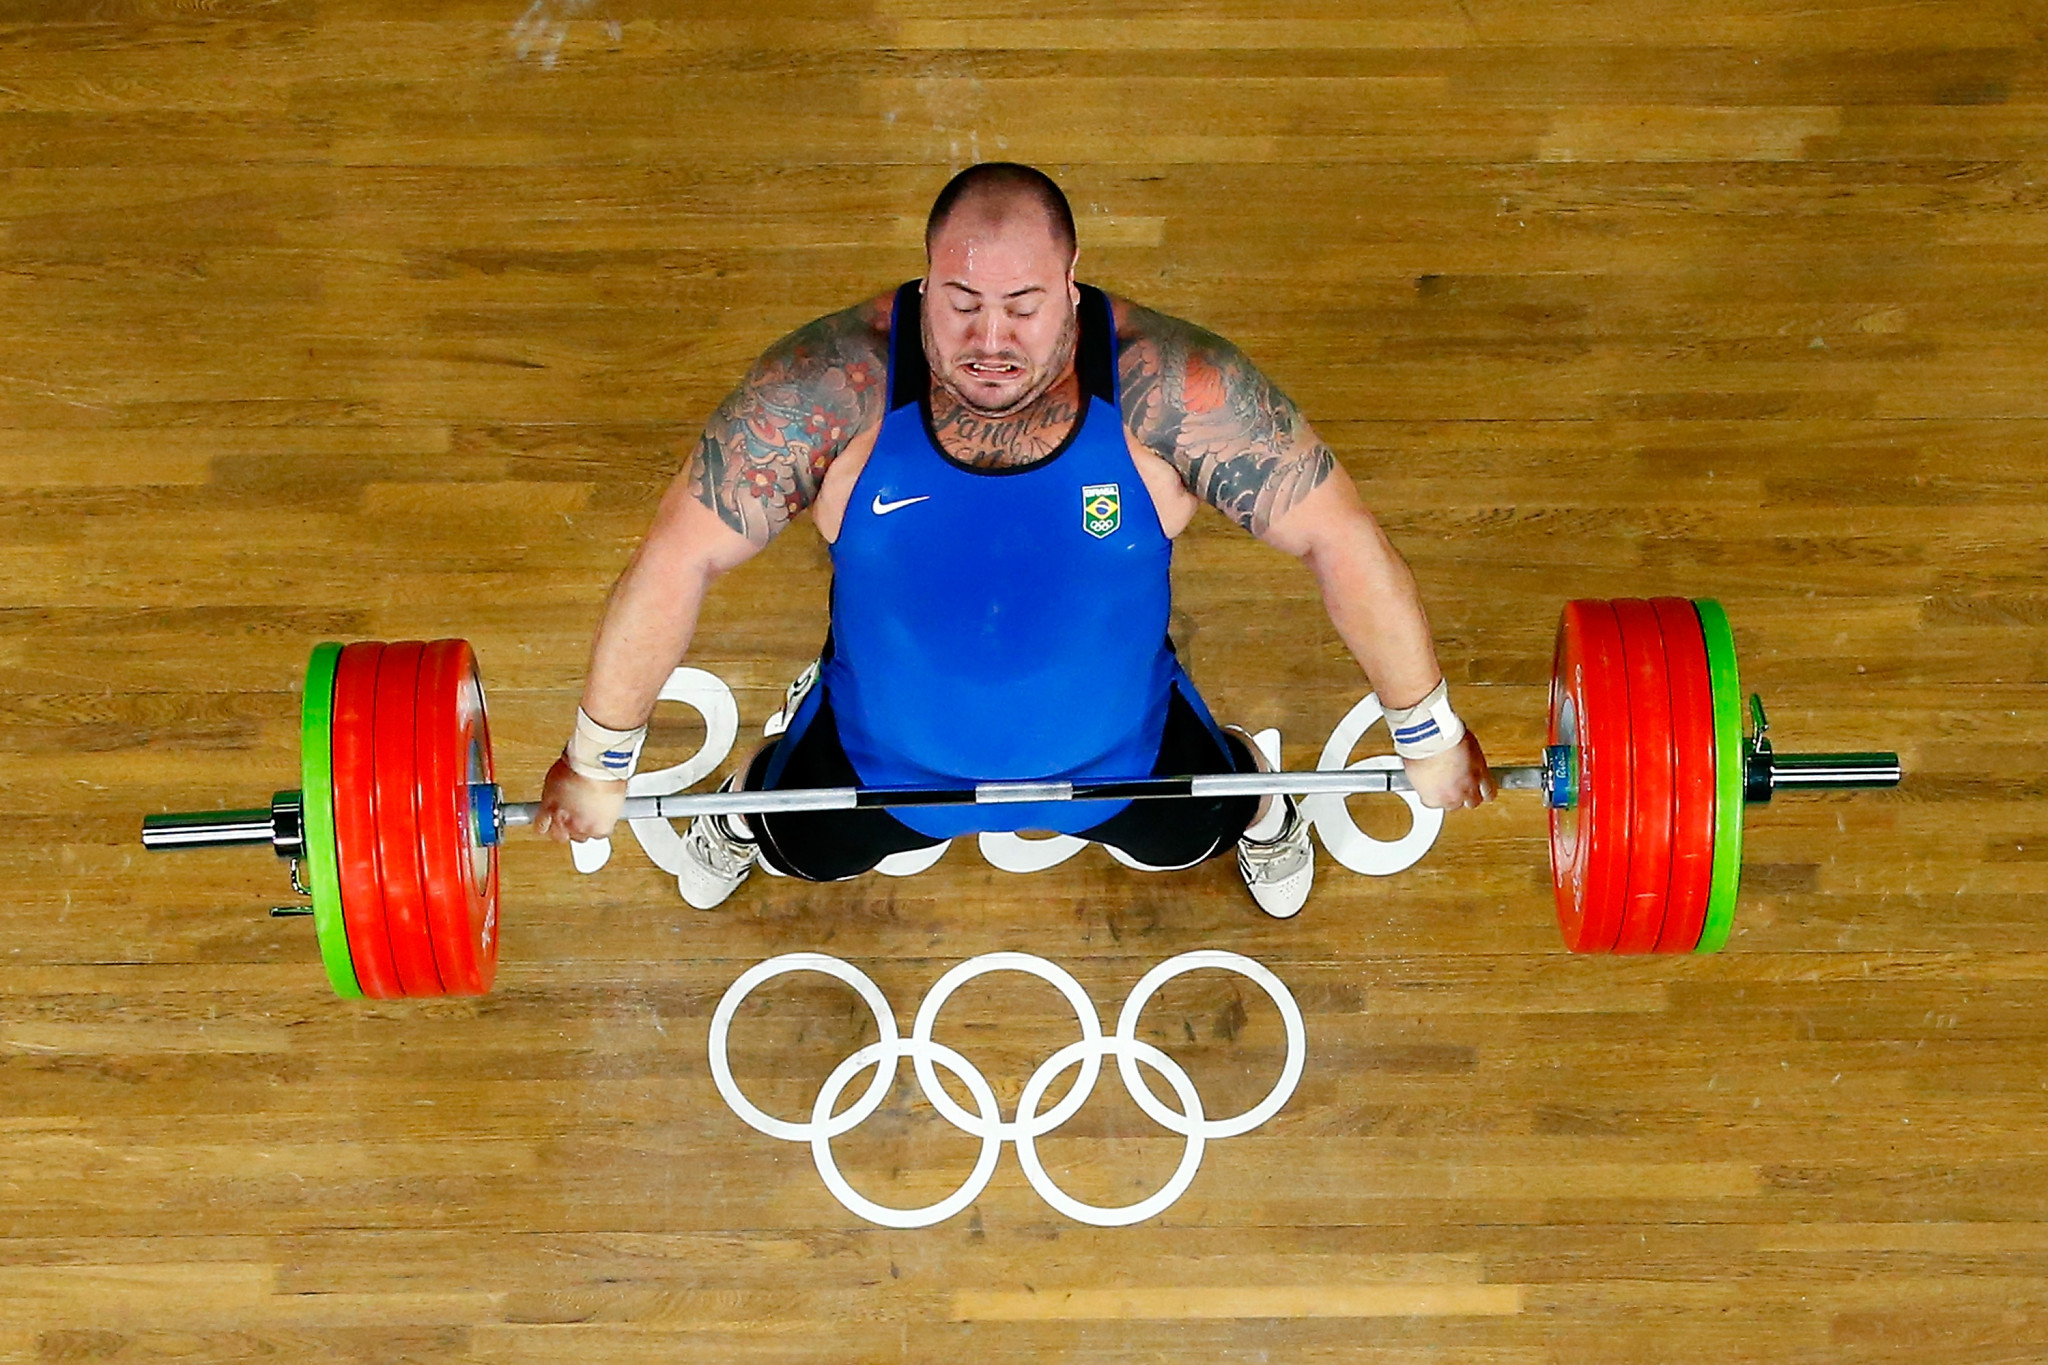 """Reis claims """"ashamed"""" of own Brazilian Weightlifting Federation boss after winning selection row"""